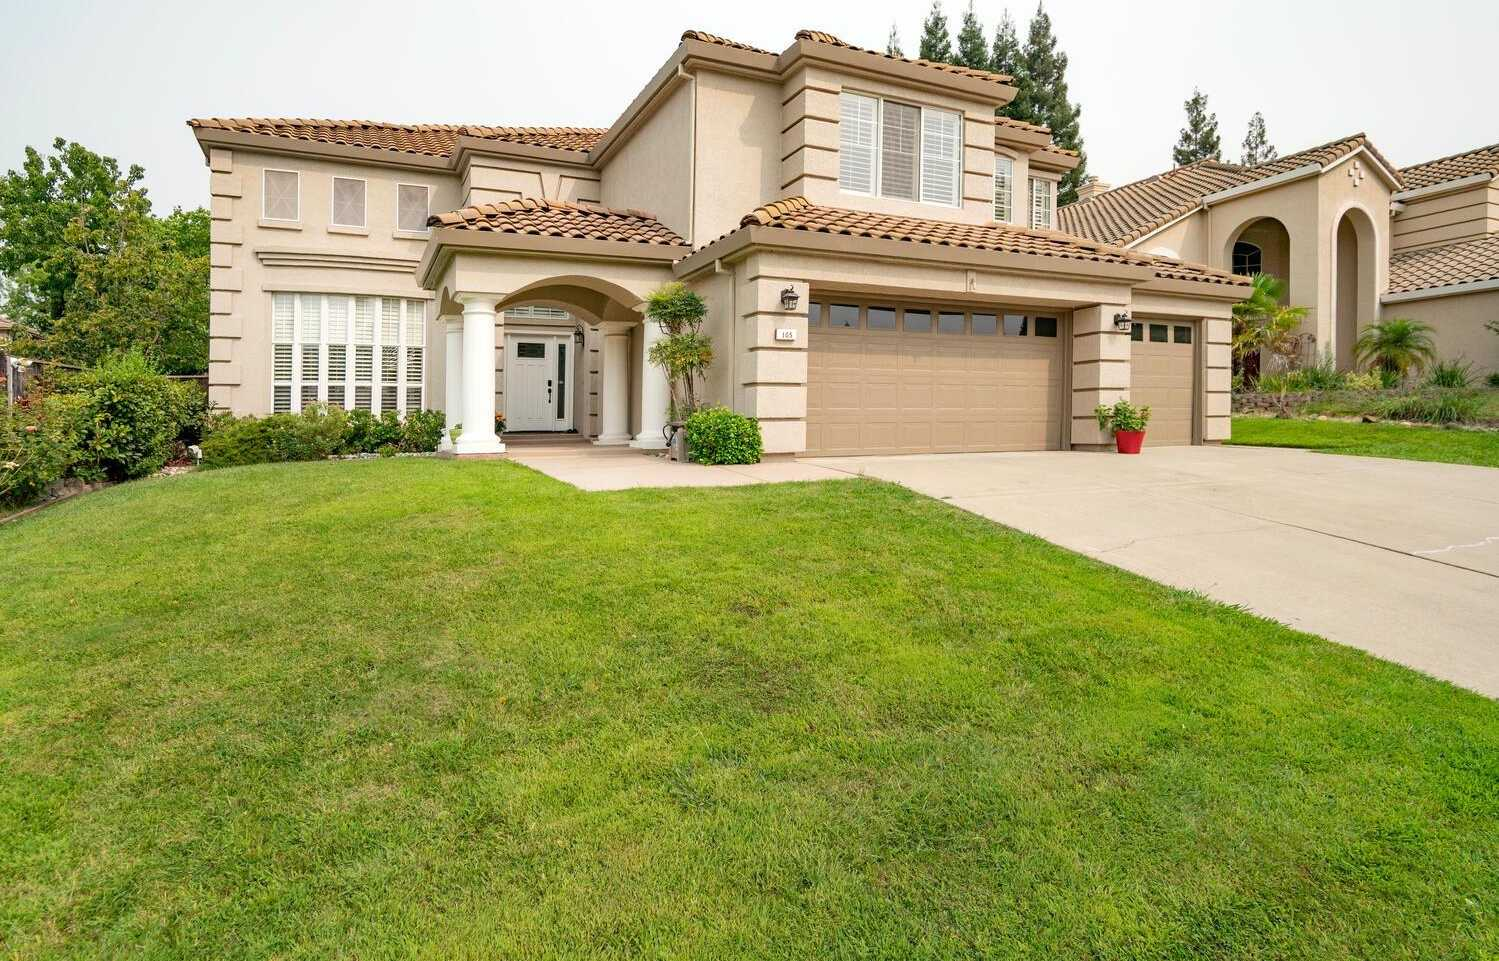 $765,000 - 5Br/3Ba -  for Sale in Folsom